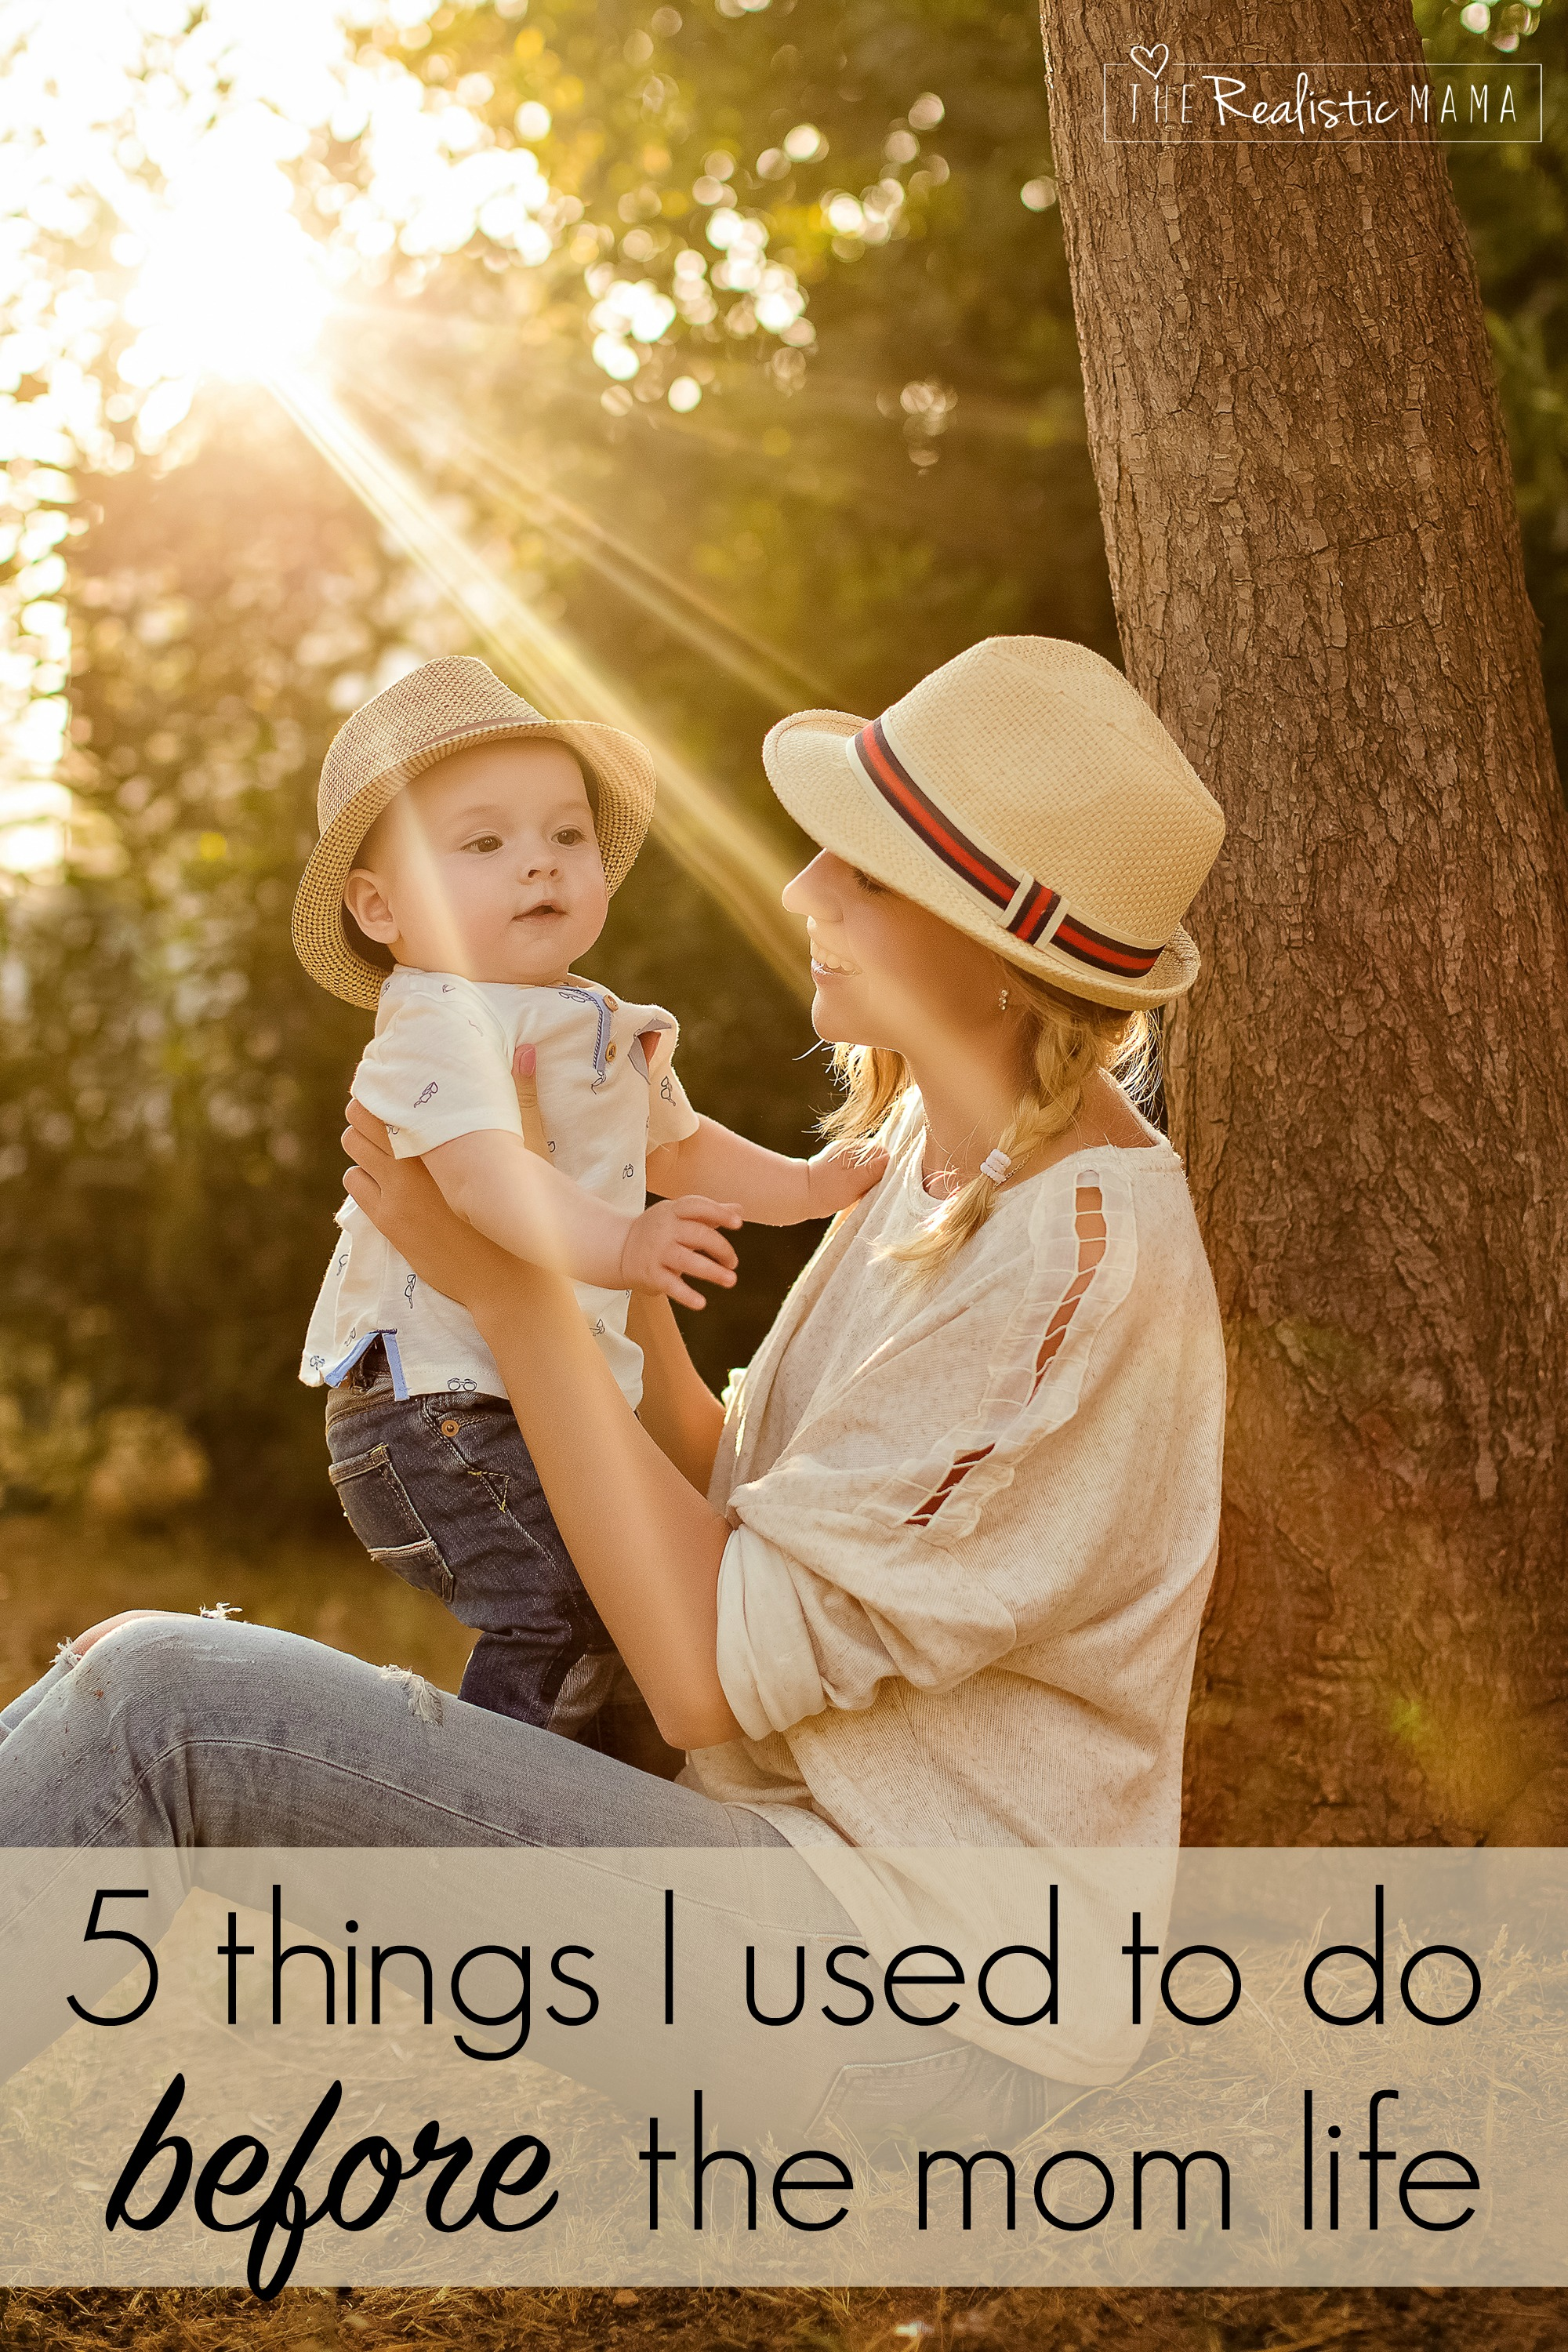 5 things I used to do before the mom life - great read!